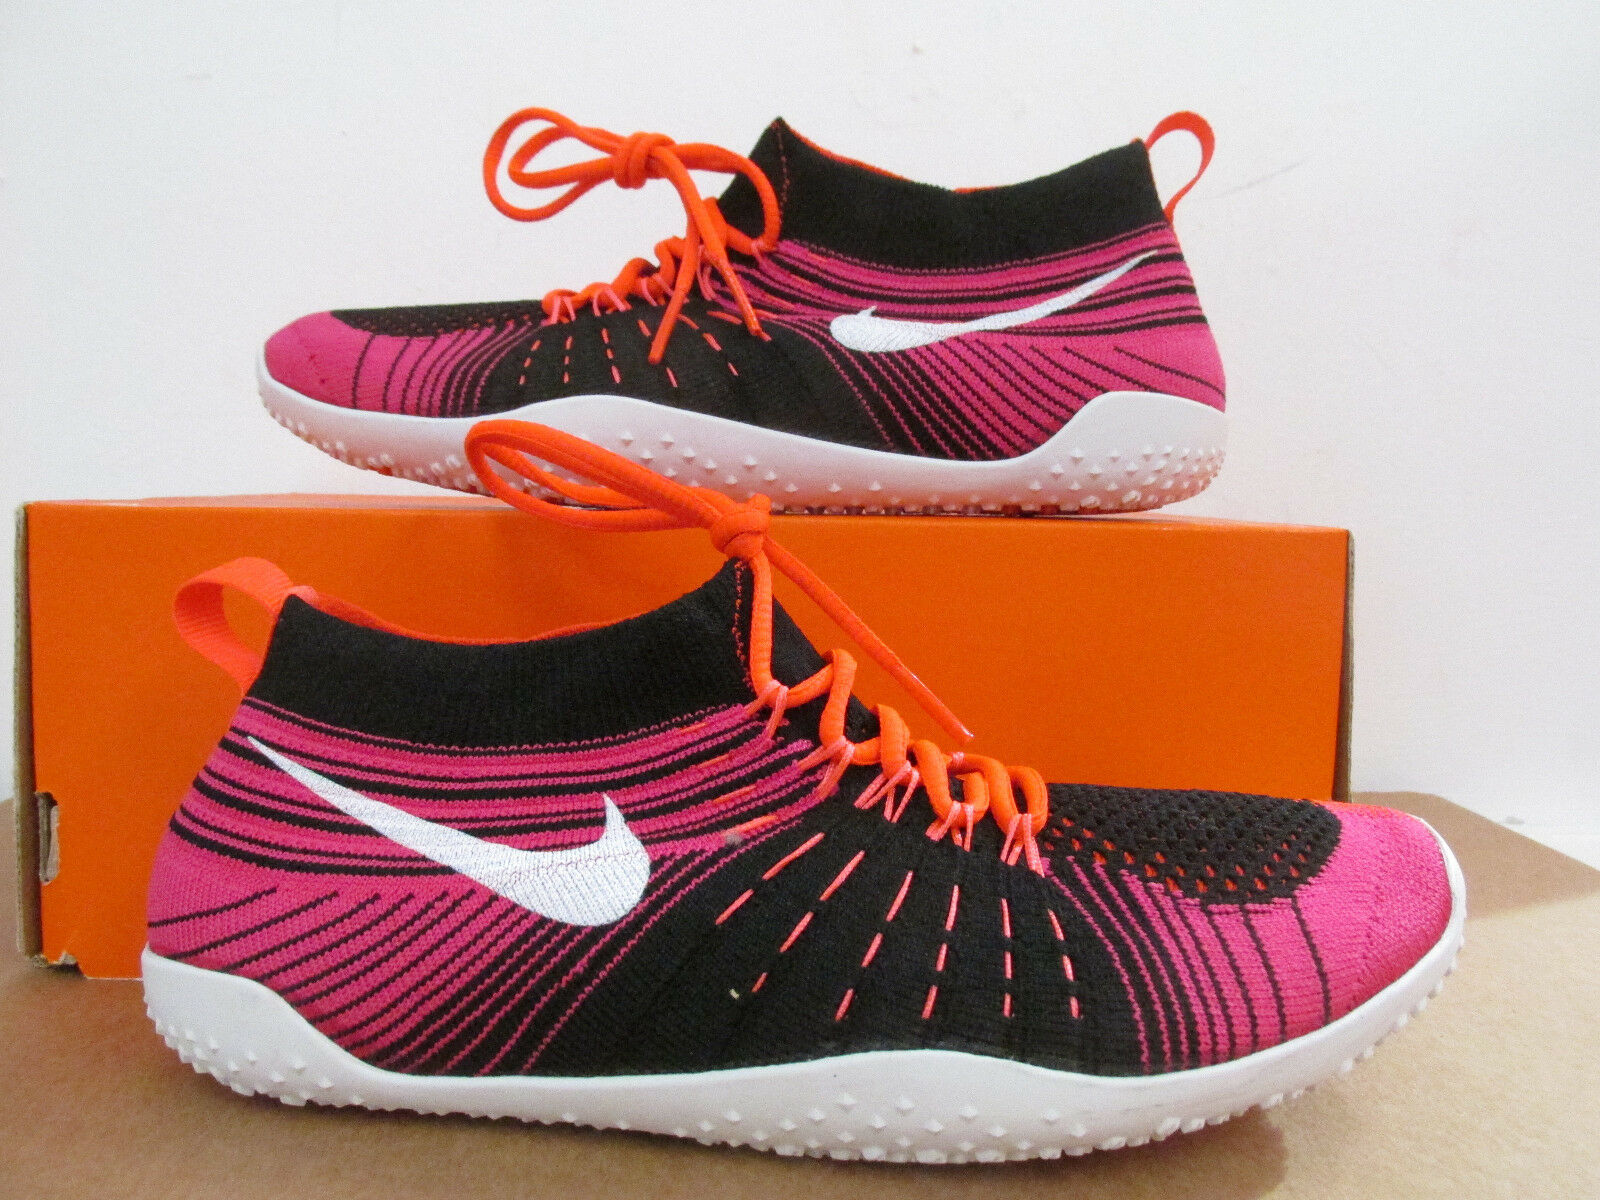 nike womens hyperfeel cross elite running trainers 638348 003 sneakers CLEARANCE